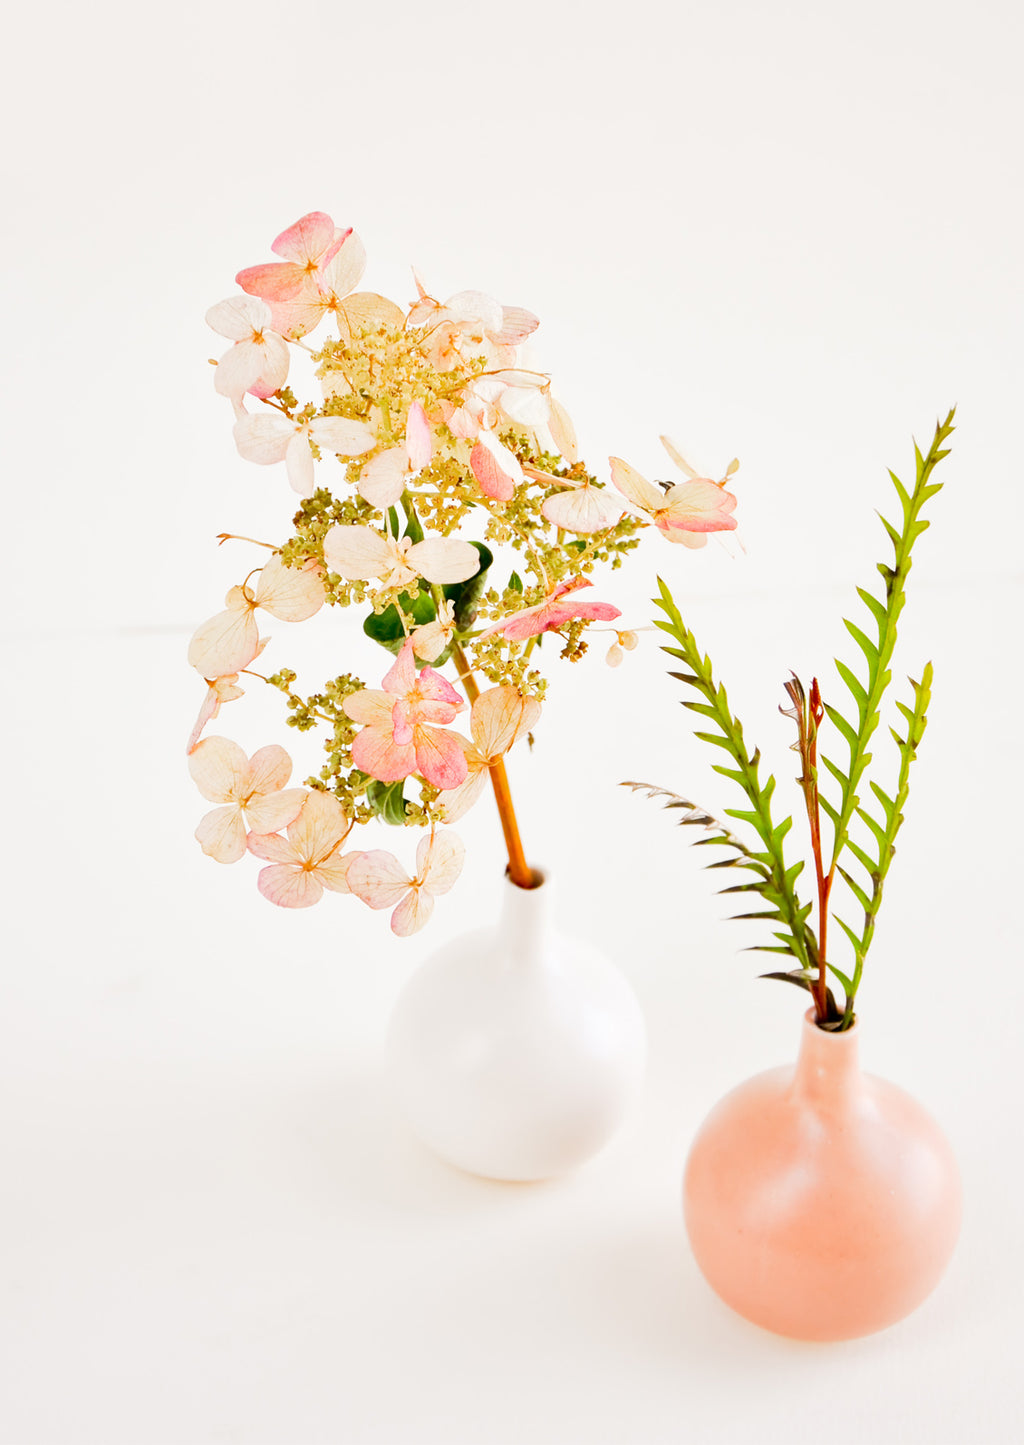 Gossamer Single Stem Vase